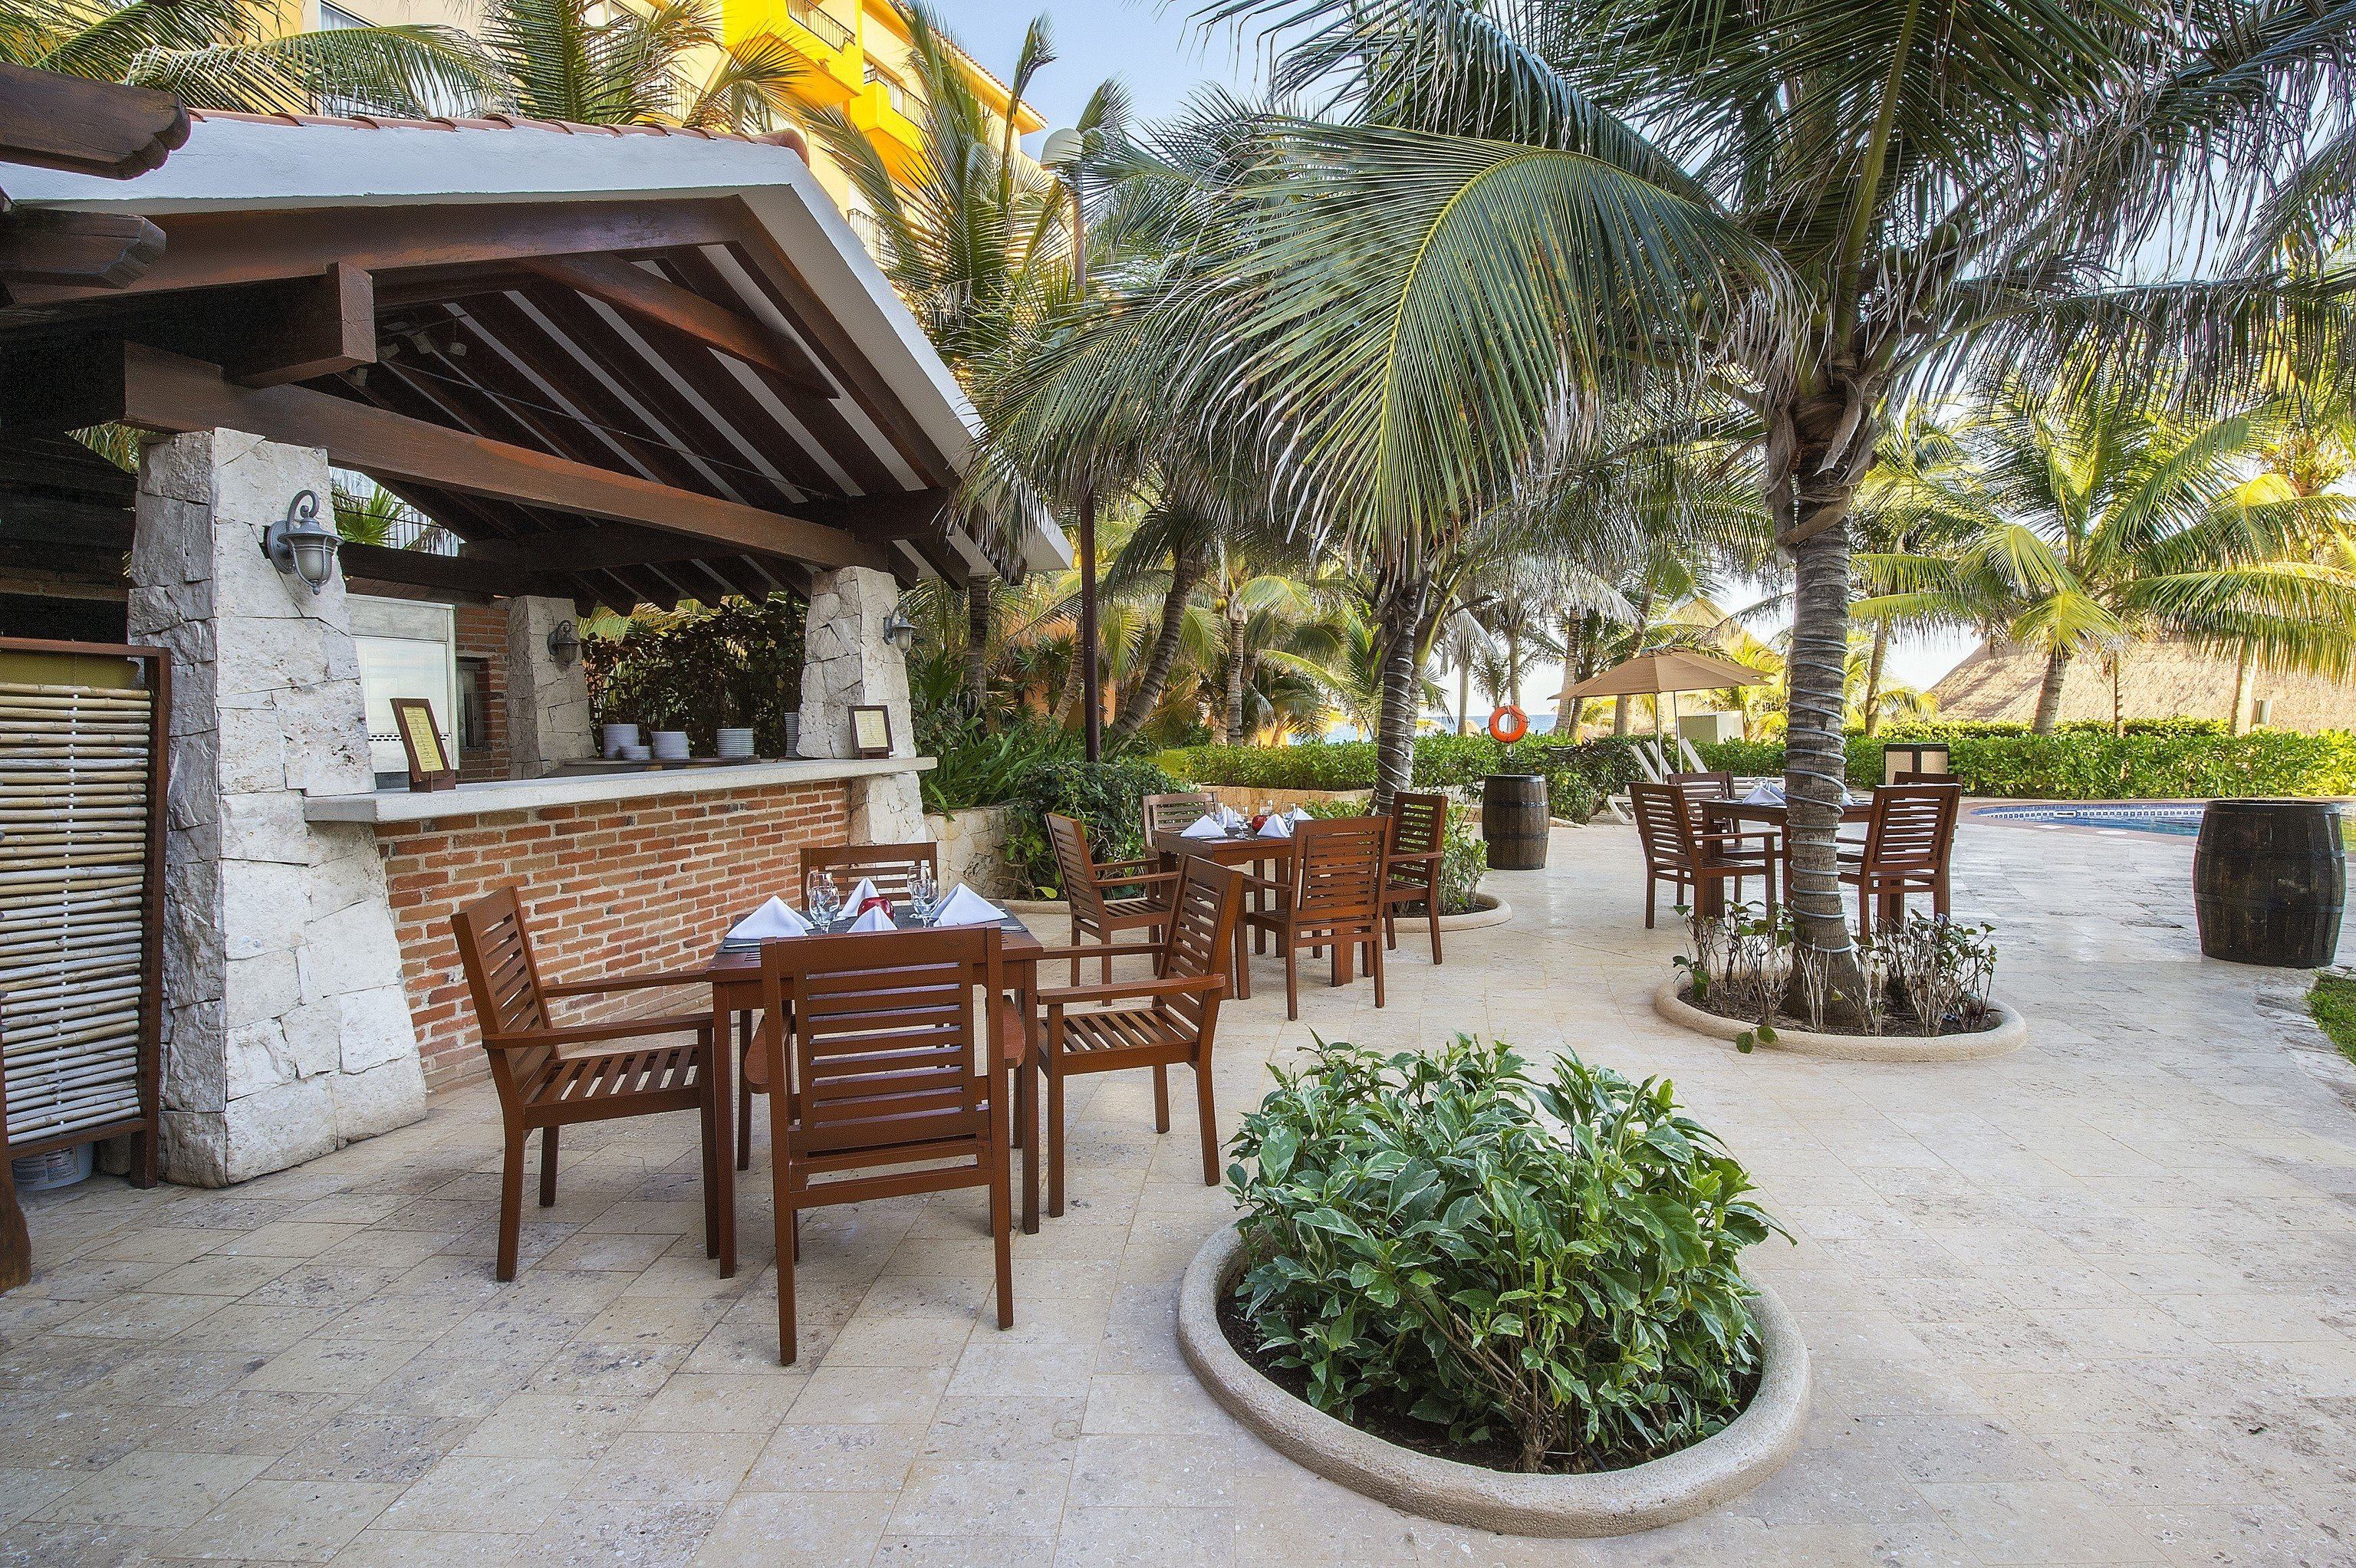 tree ground chair property Resort arecales palm tree outdoor structure Patio wooden backyard Villa plant palm Garden stone